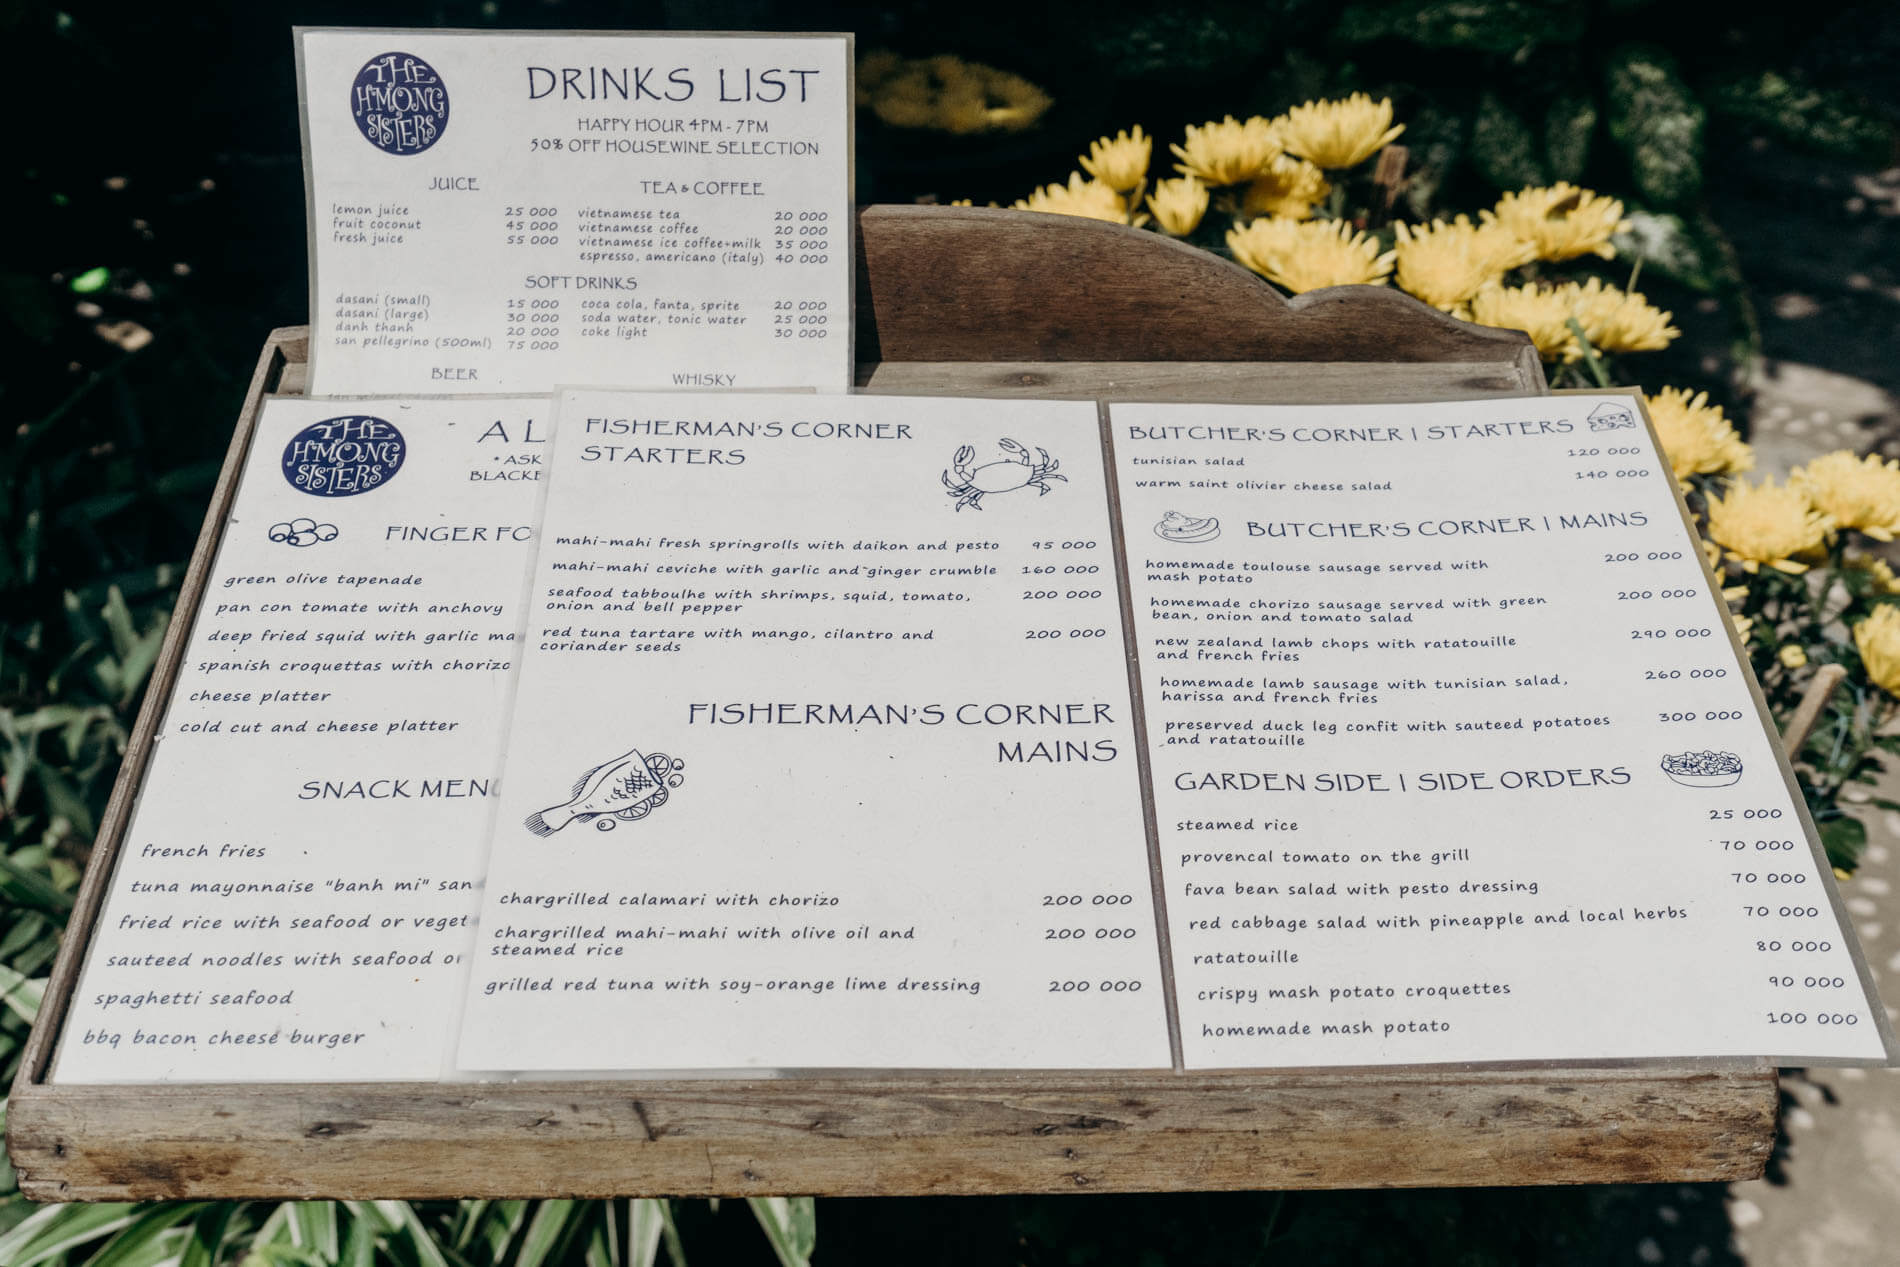 The H'mong Sisters restaurant drinks list